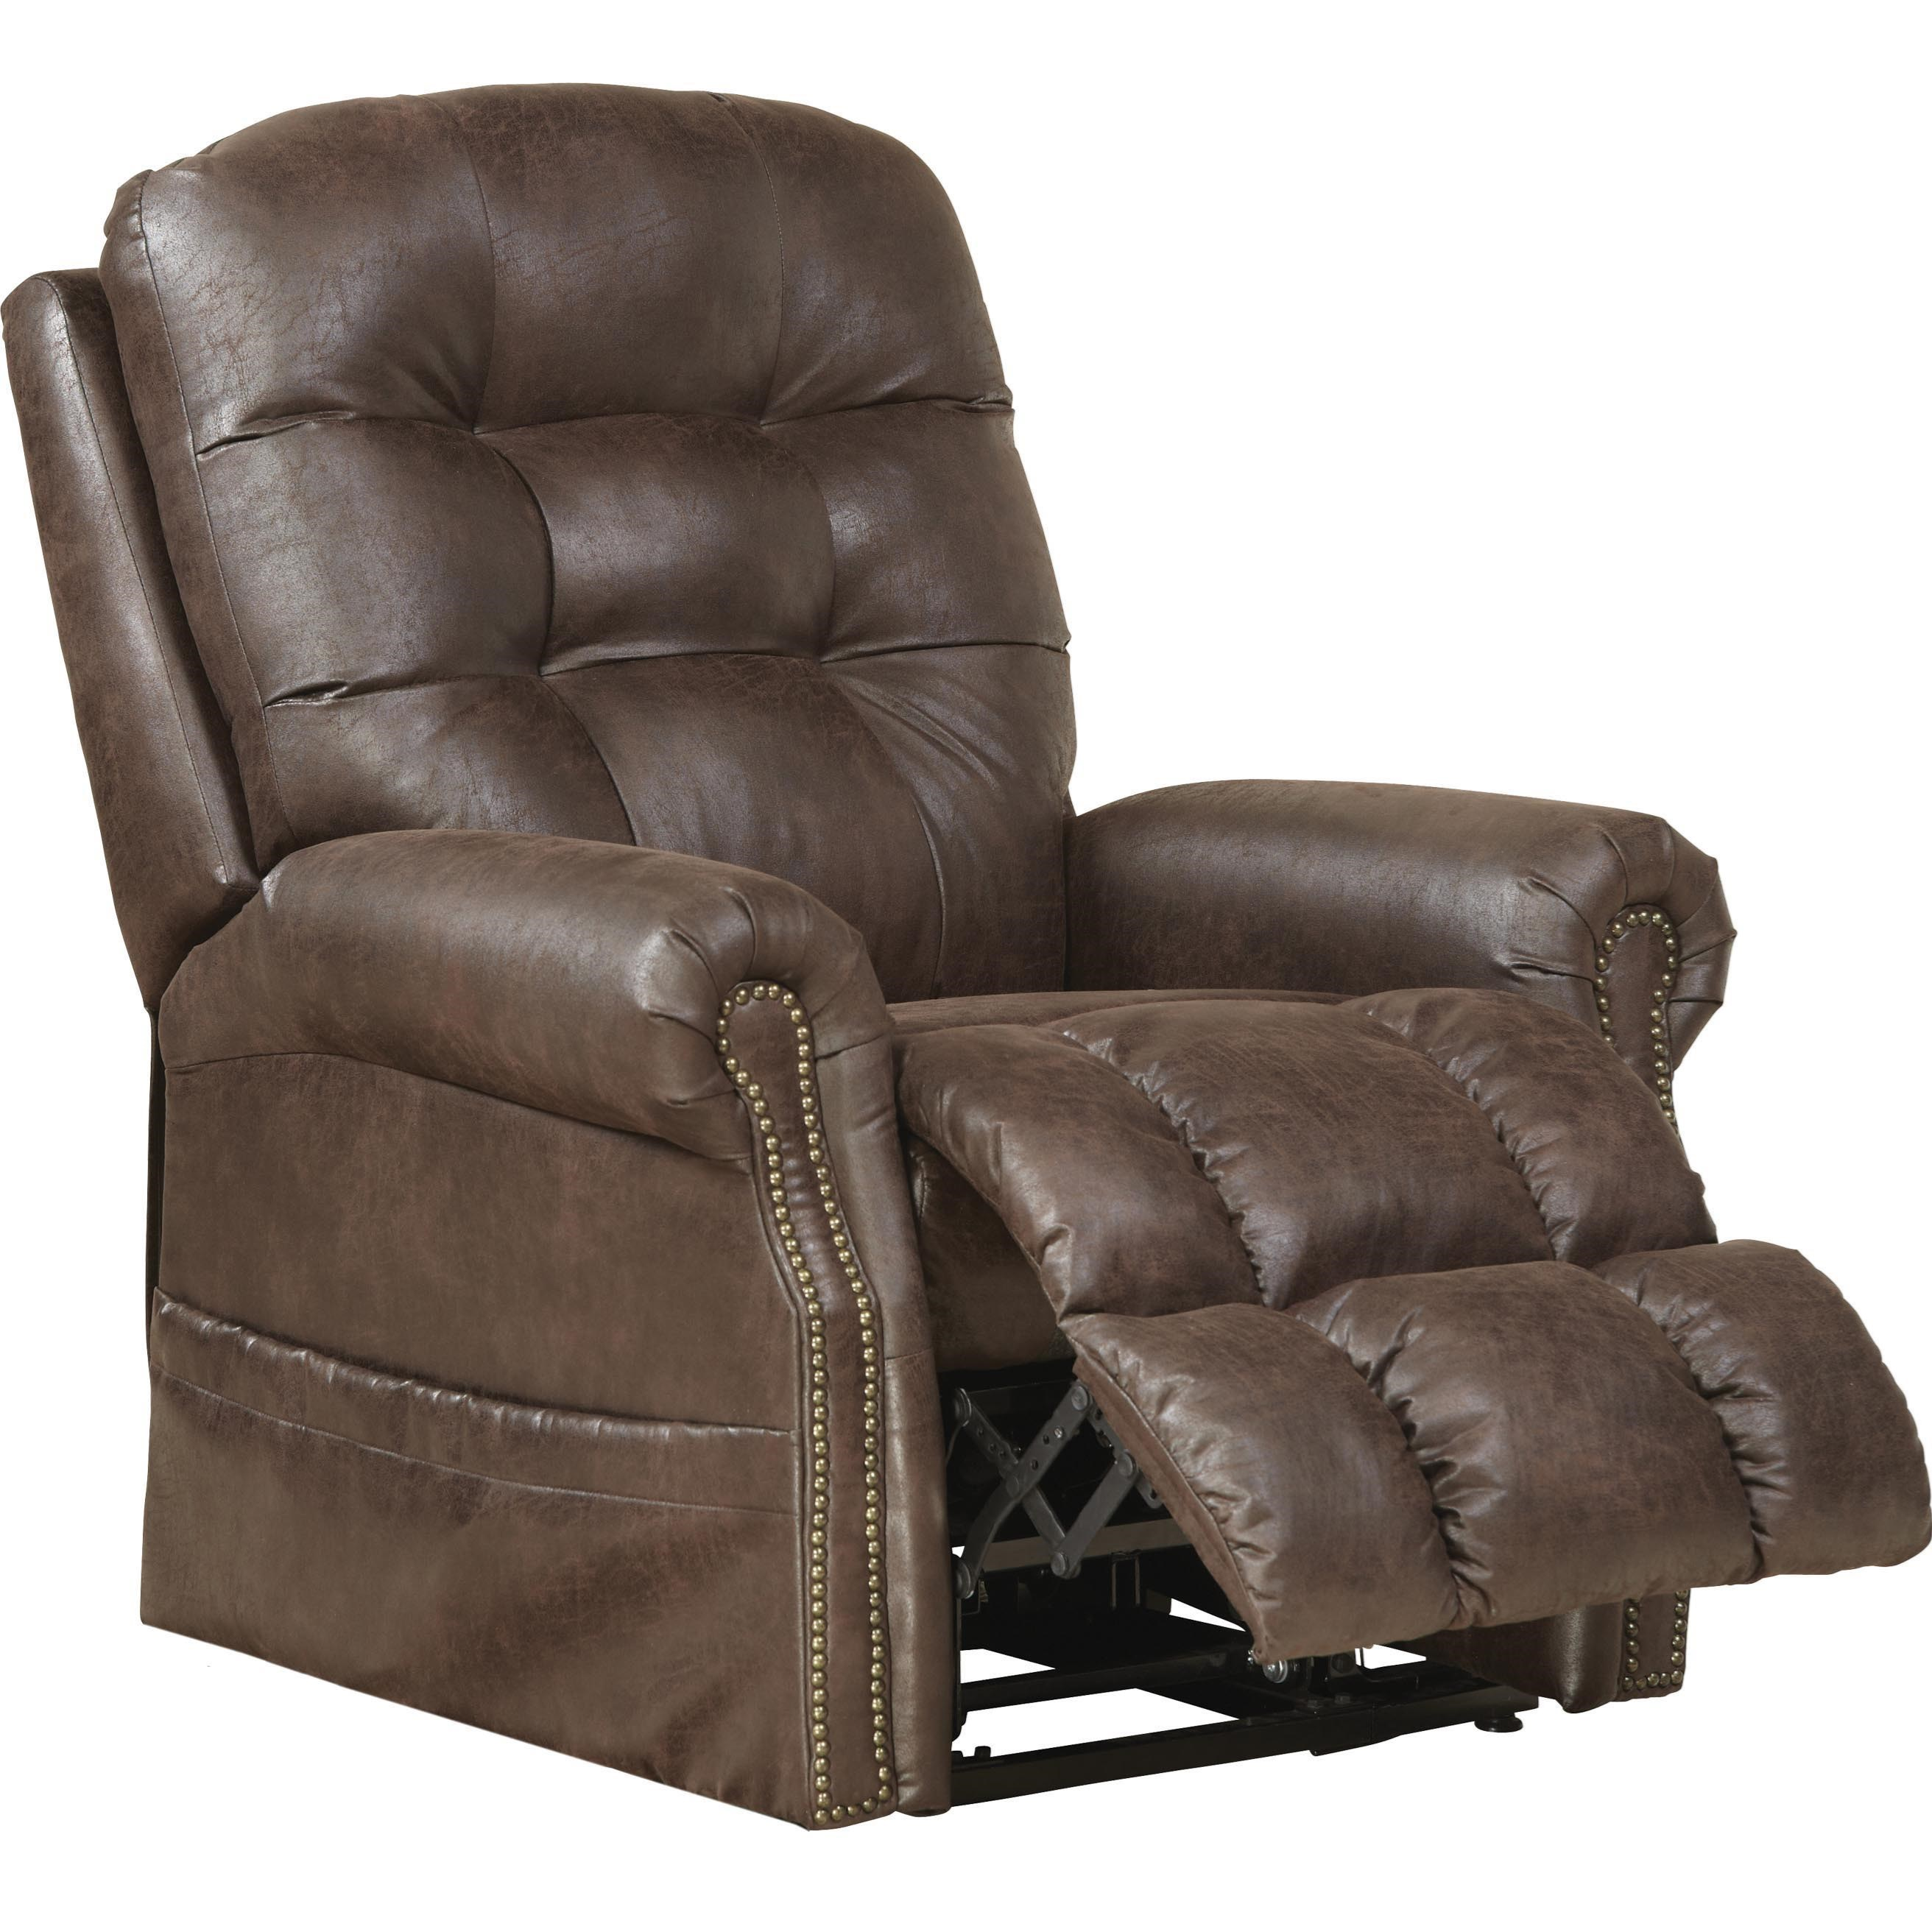 Catnapper motion chairs and recliners ramsey lift chair with heat and massage miskelly - Catnapper lift chairs recliners ...